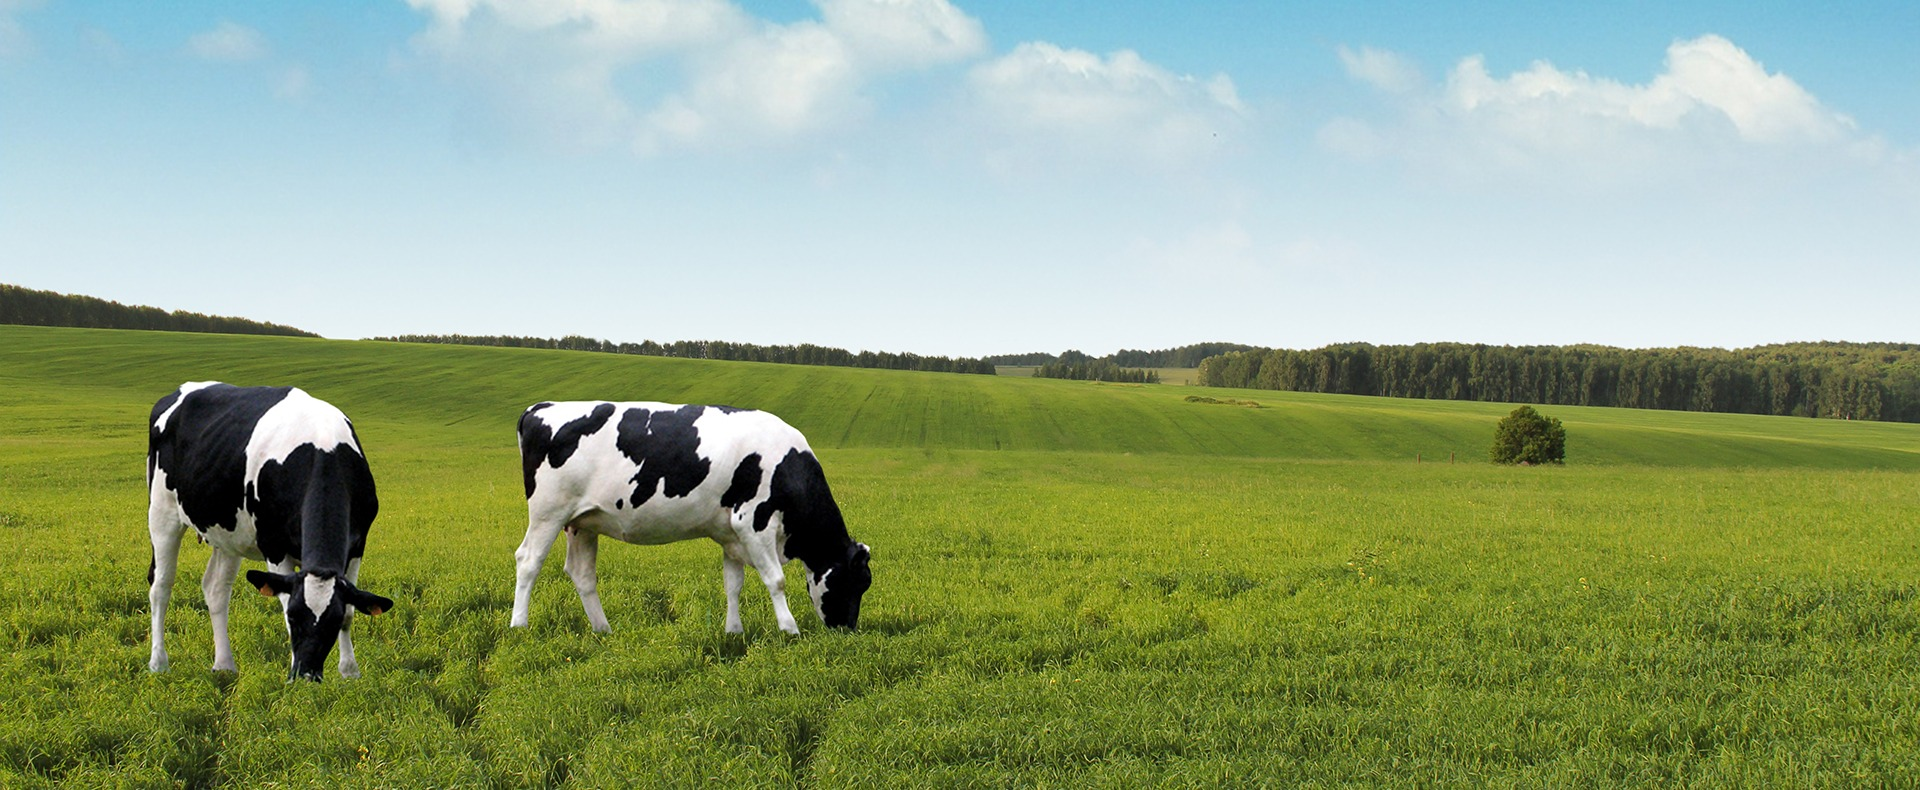 Two cows grazing in a meadow